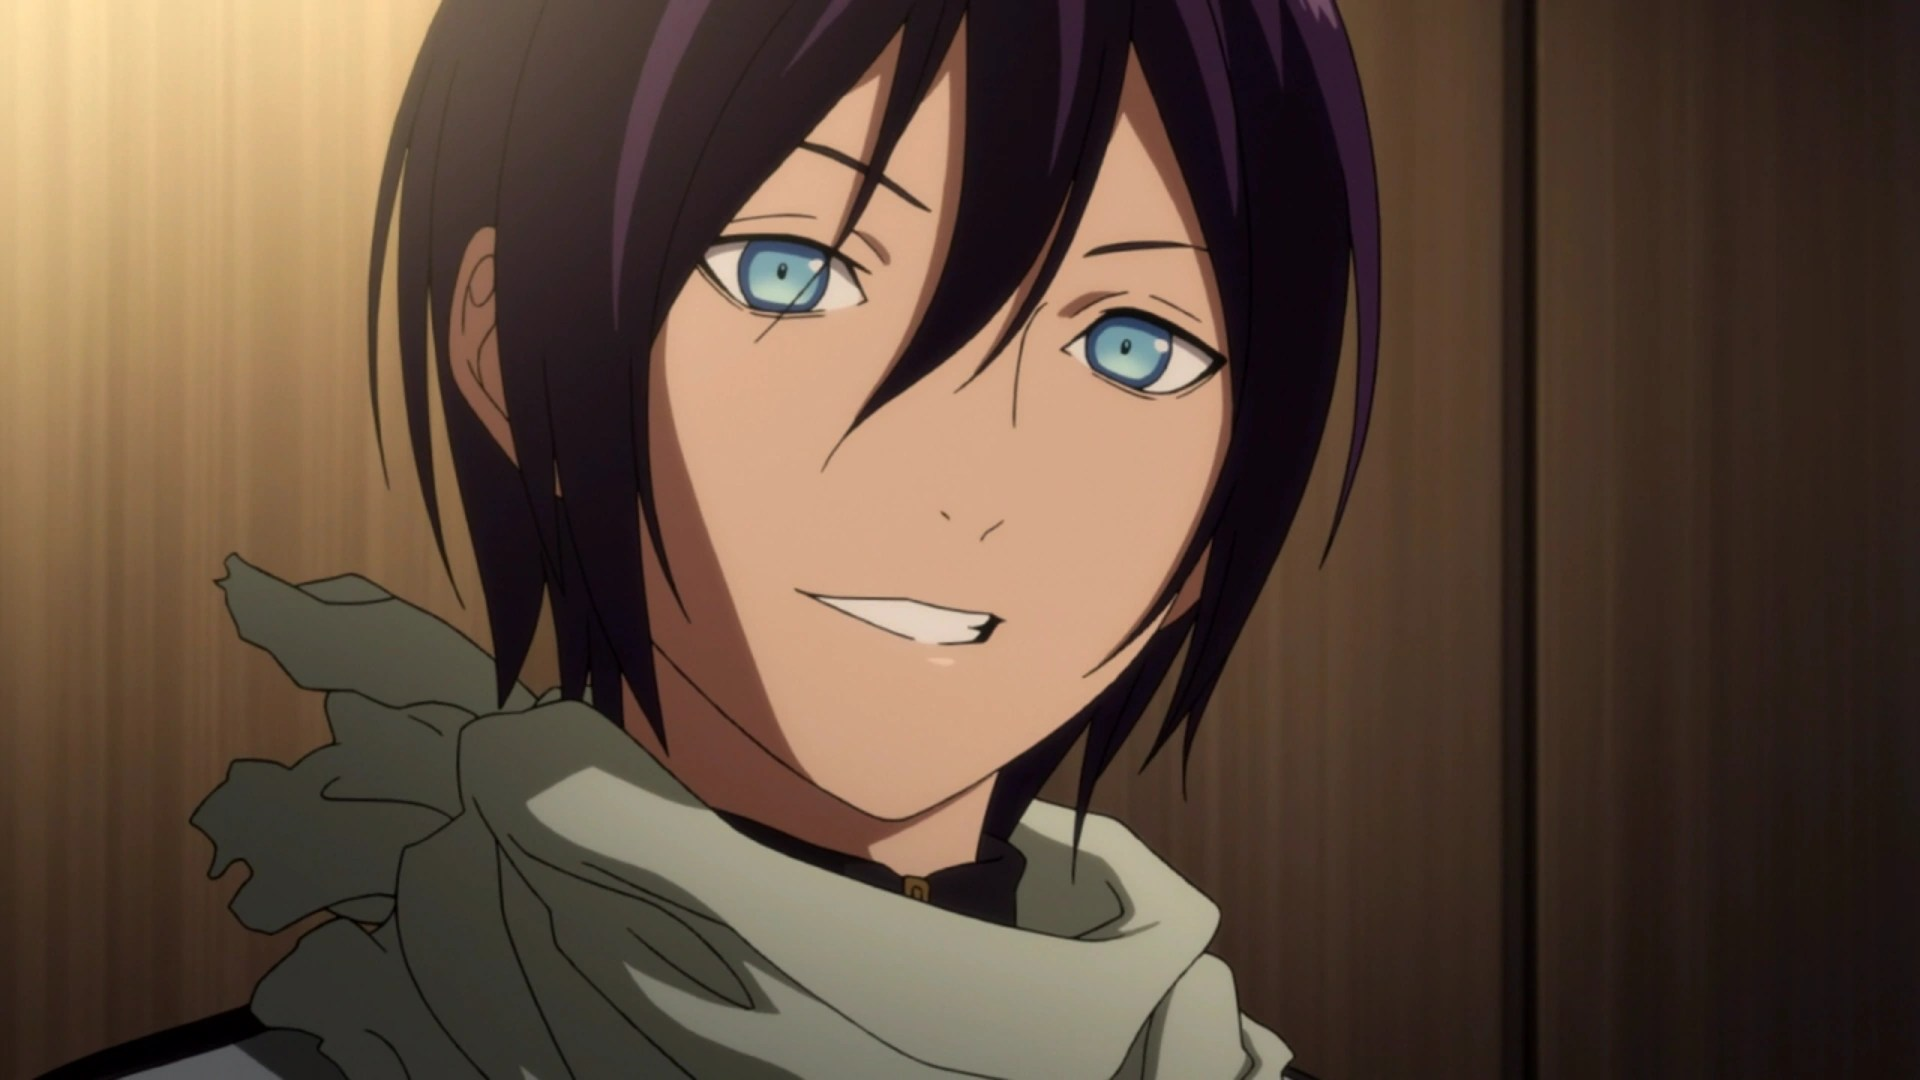 Anime Character 2 : Noragami characters amp s anime reviews